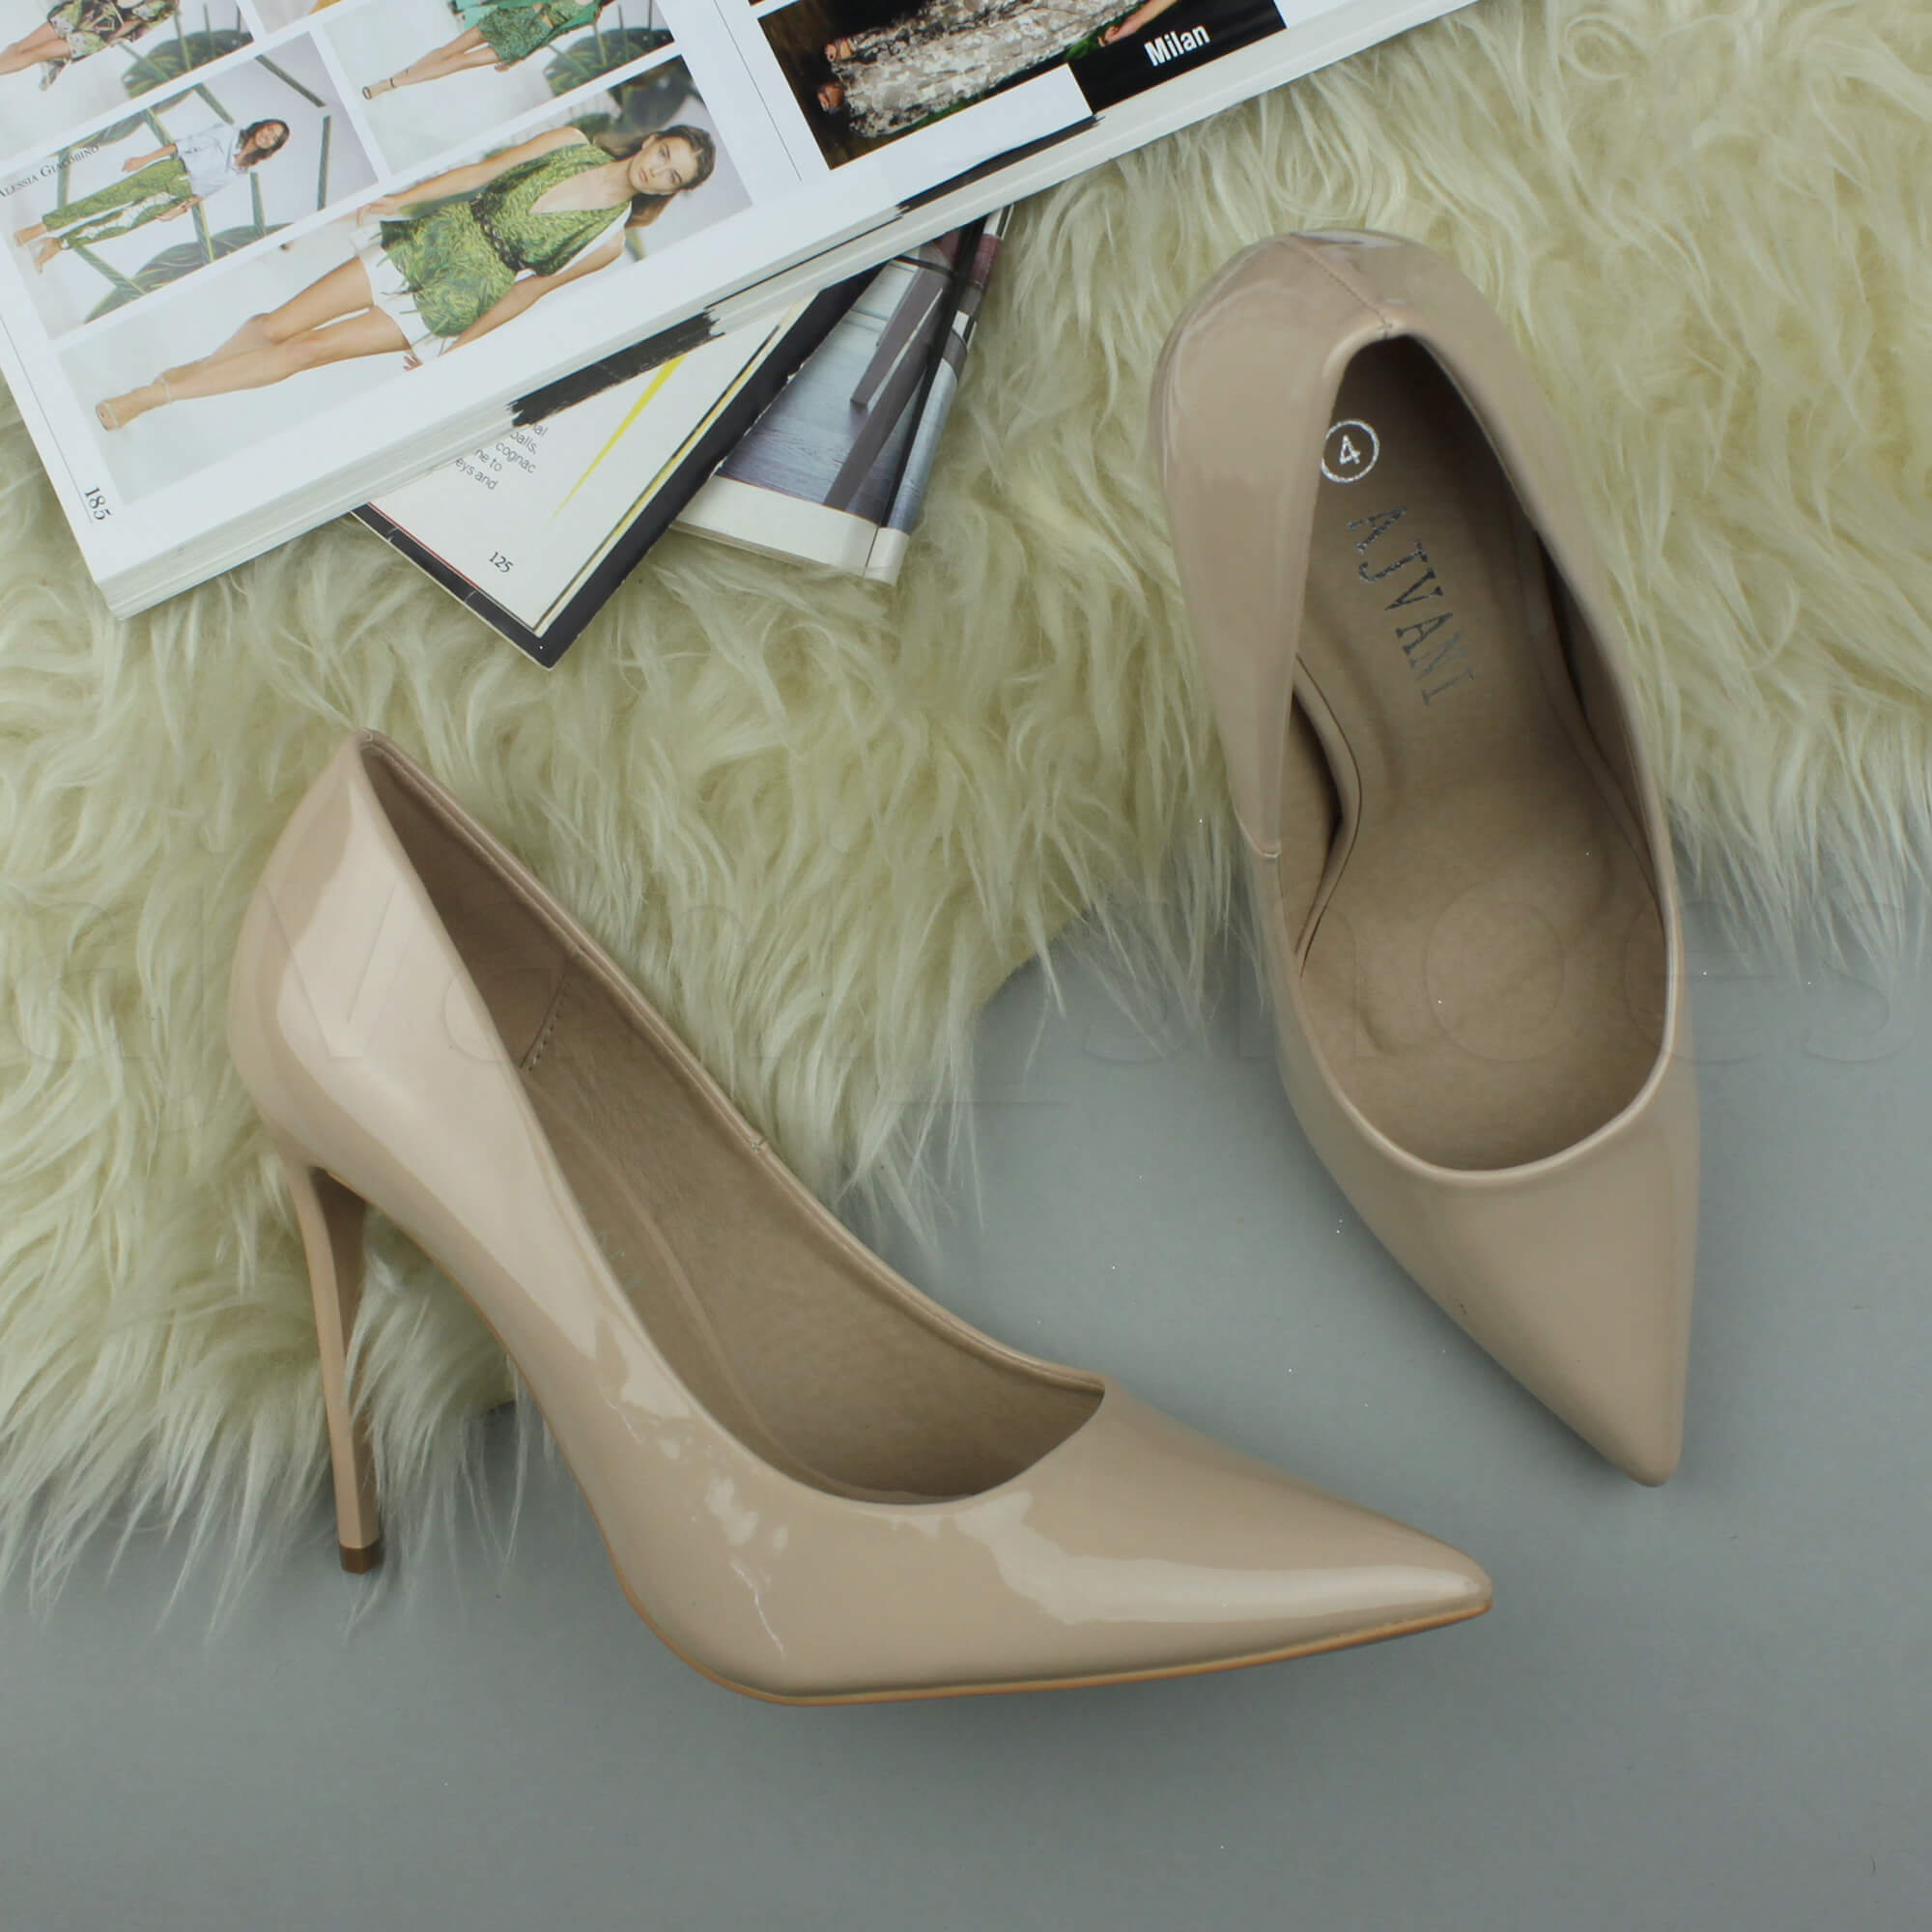 WOMENS-LADIES-HIGH-HEEL-POINTED-CONTRAST-COURT-SMART-PARTY-WORK-SHOES-PUMPS-SIZE thumbnail 131